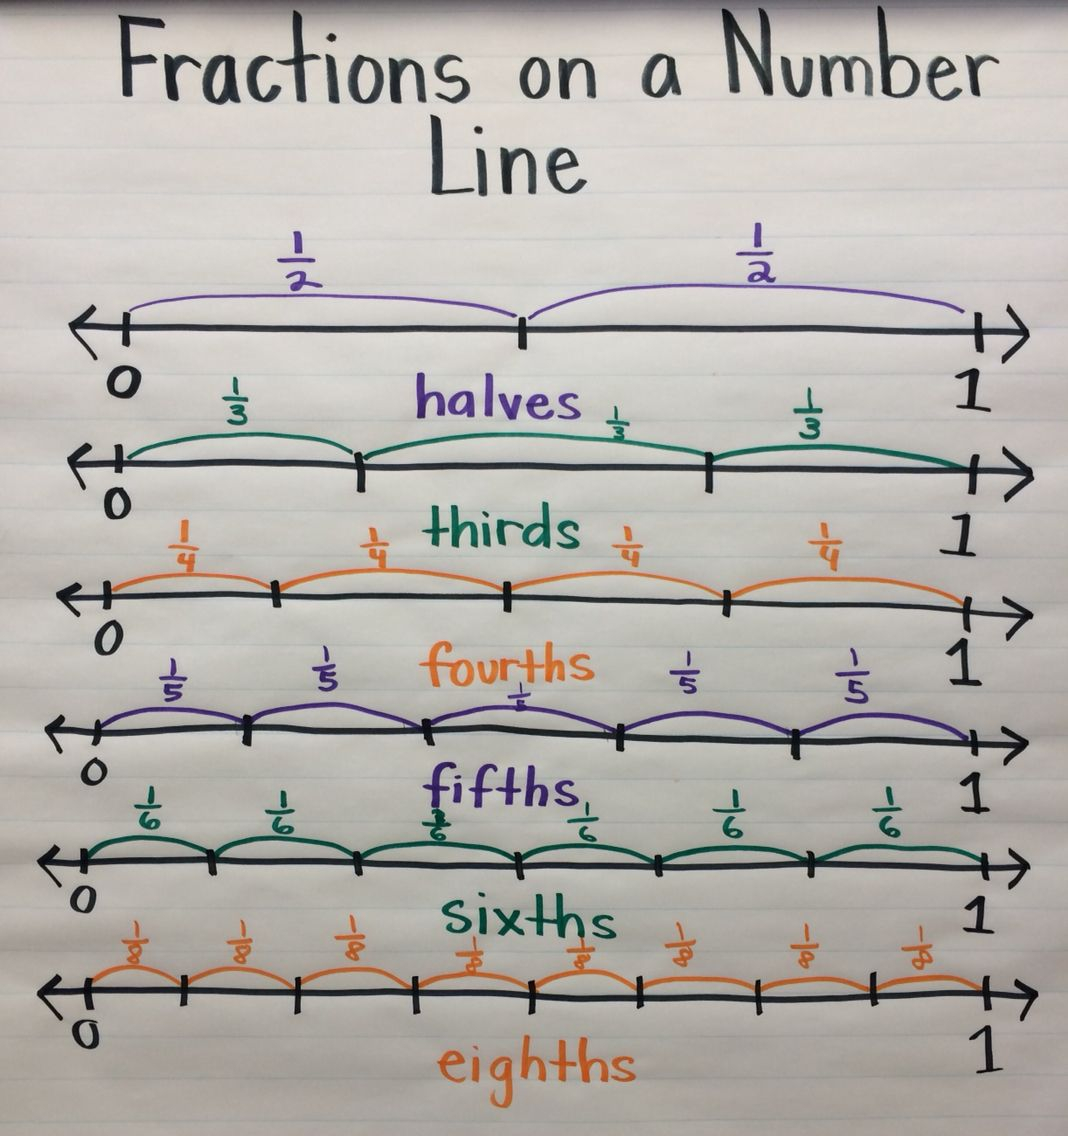 Writing Fractions On A Number Line Worksheet